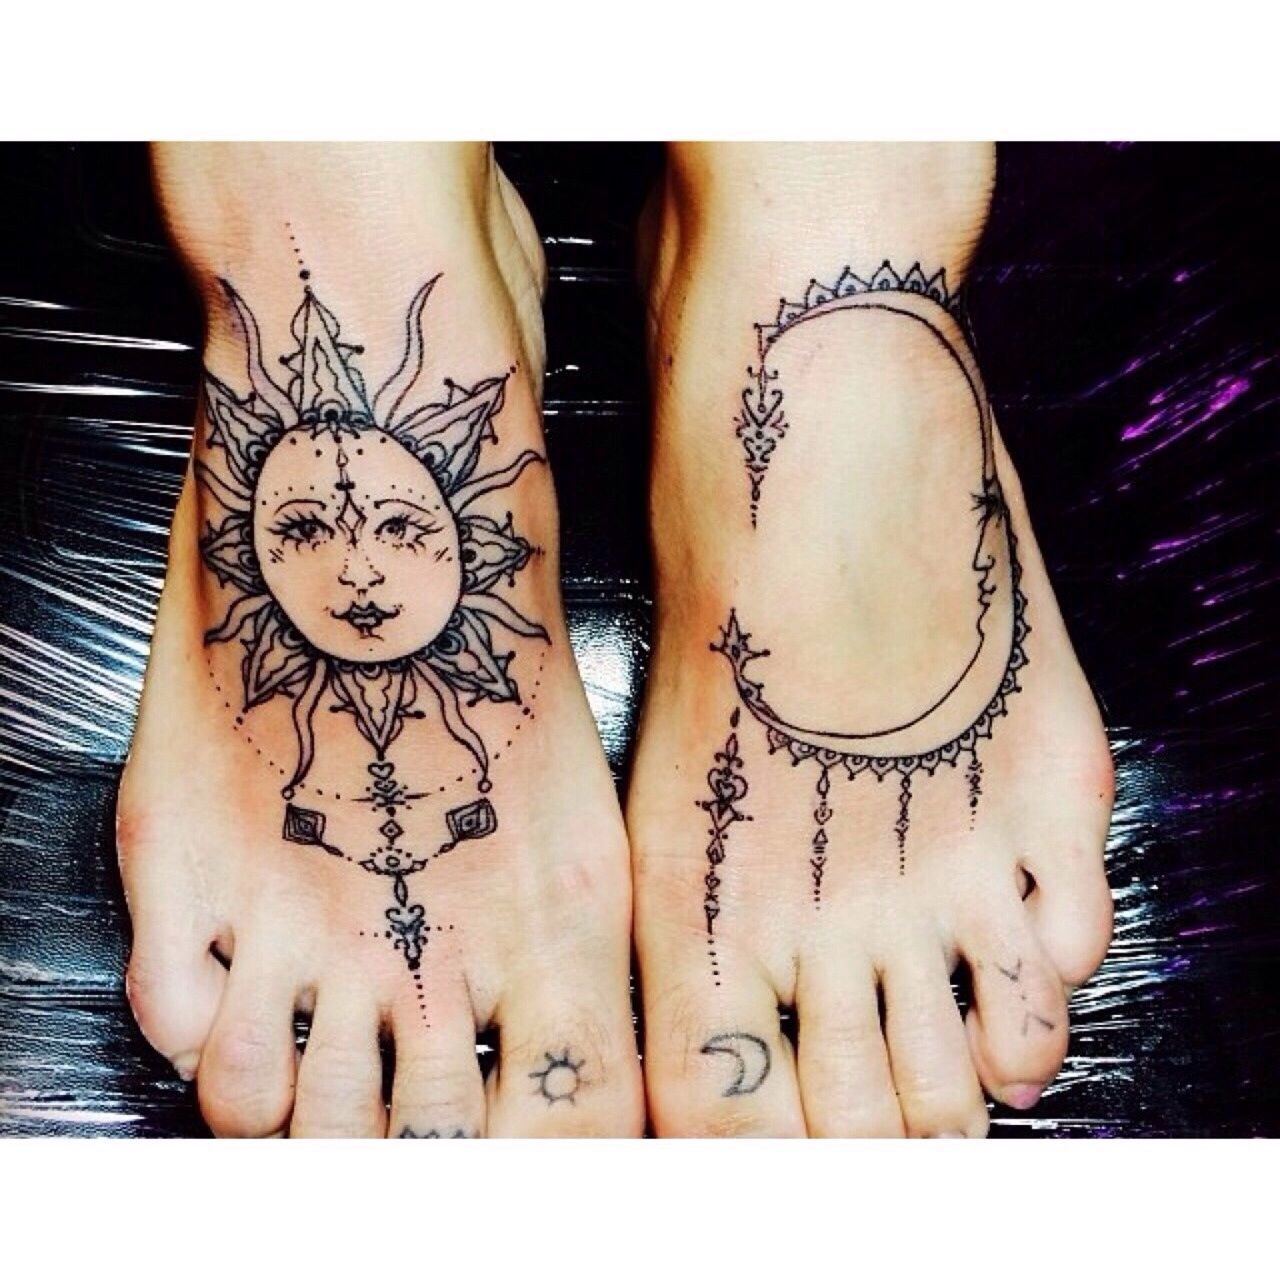 15 foot tattoo designs for women tattoo moon and piercings indie tattoos lovely henna gypsy girls with tattoos sun and moon foot tattoo beautiful tattoos moon tattoos detailed tattoo sun tattoos love on pause buycottarizona Image collections